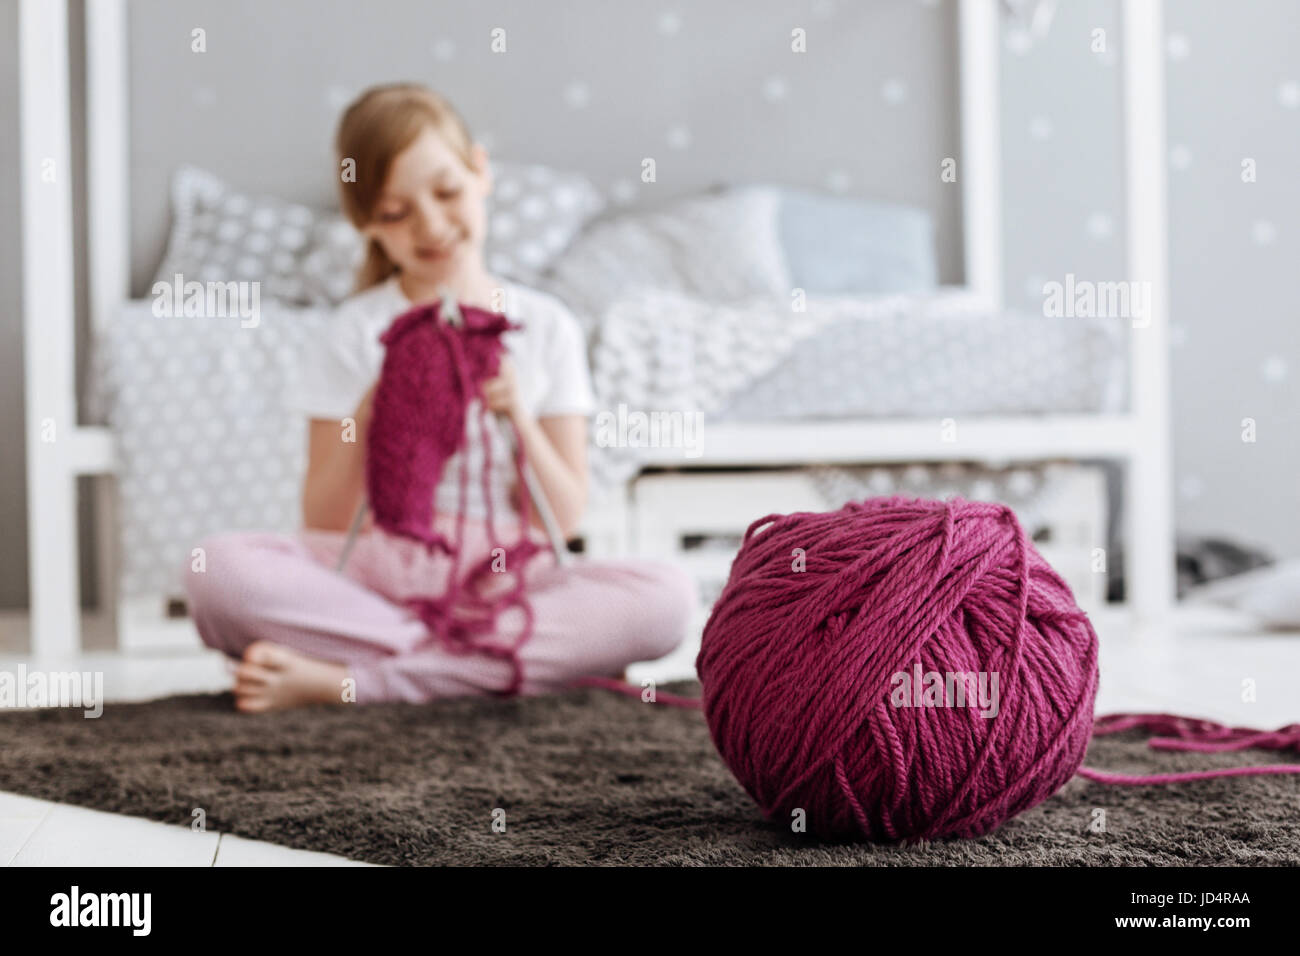 Diligent cute little girl knitting quelque chose Photo Stock